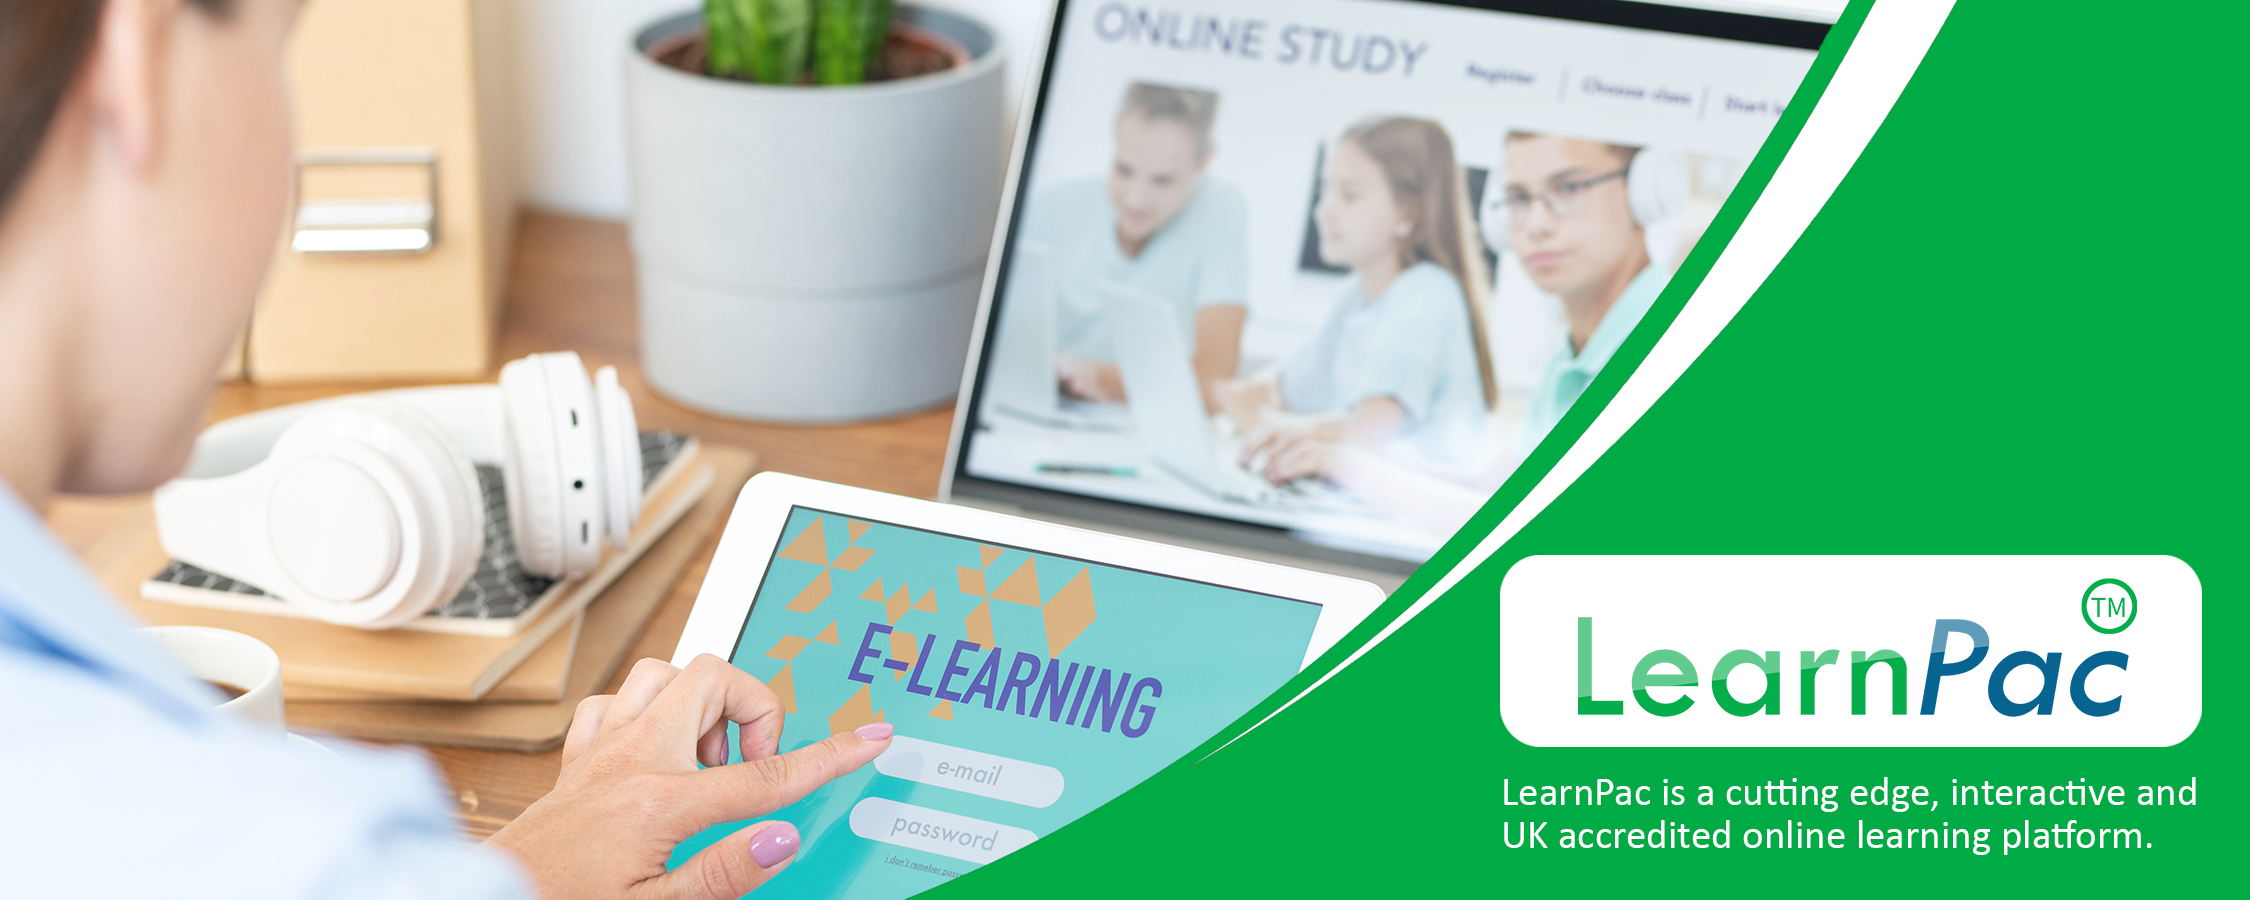 Basic Life Support - Train the Trainer Course + Trainer Pack - E-Learning Courses - LearnPac Systems UK --